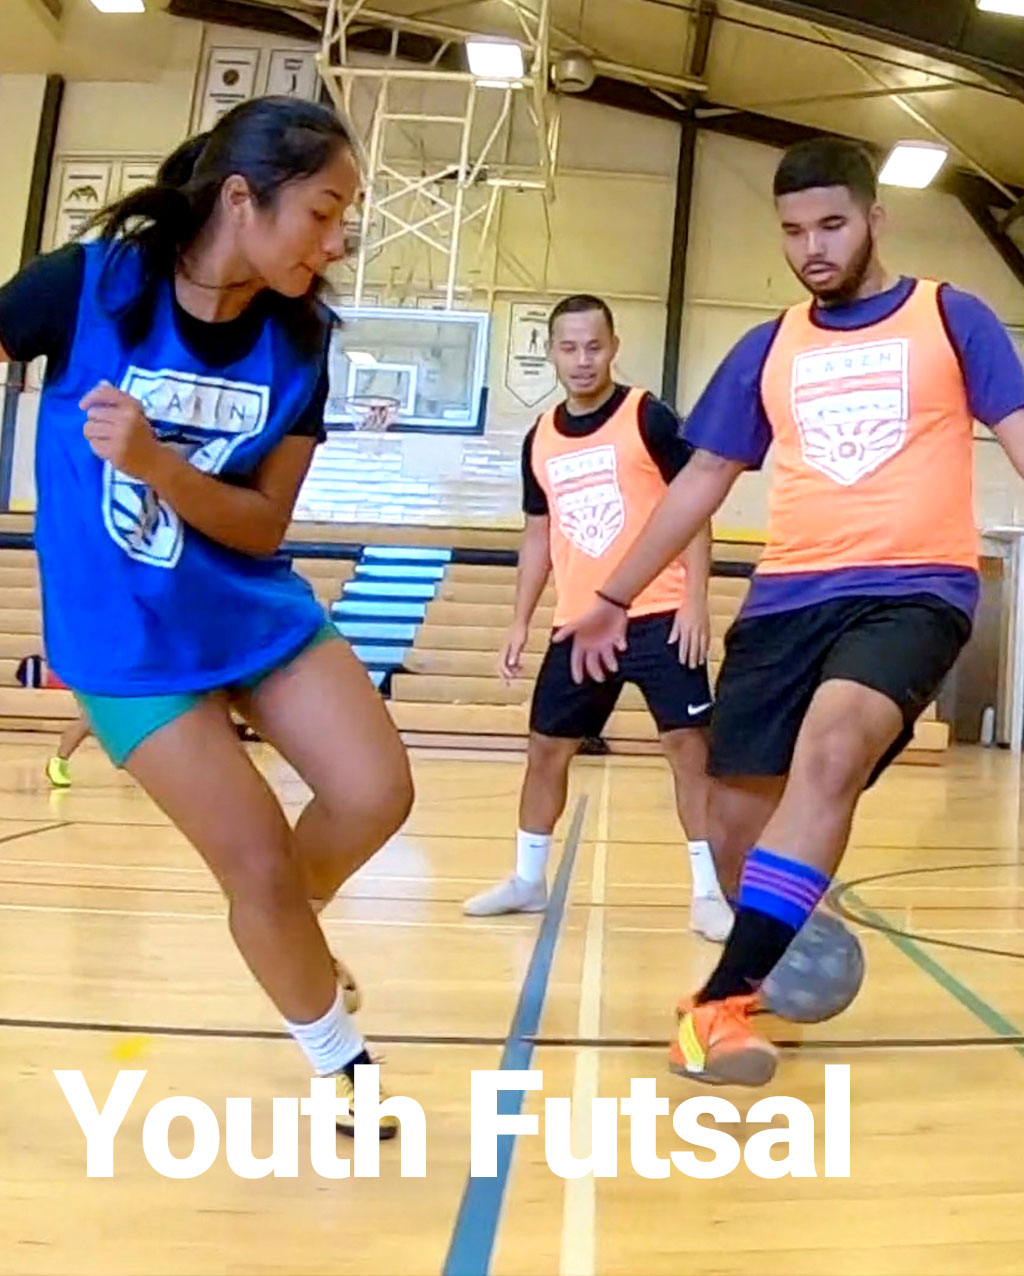 karen-national-team-full-image-header-mobile-youth-futsal